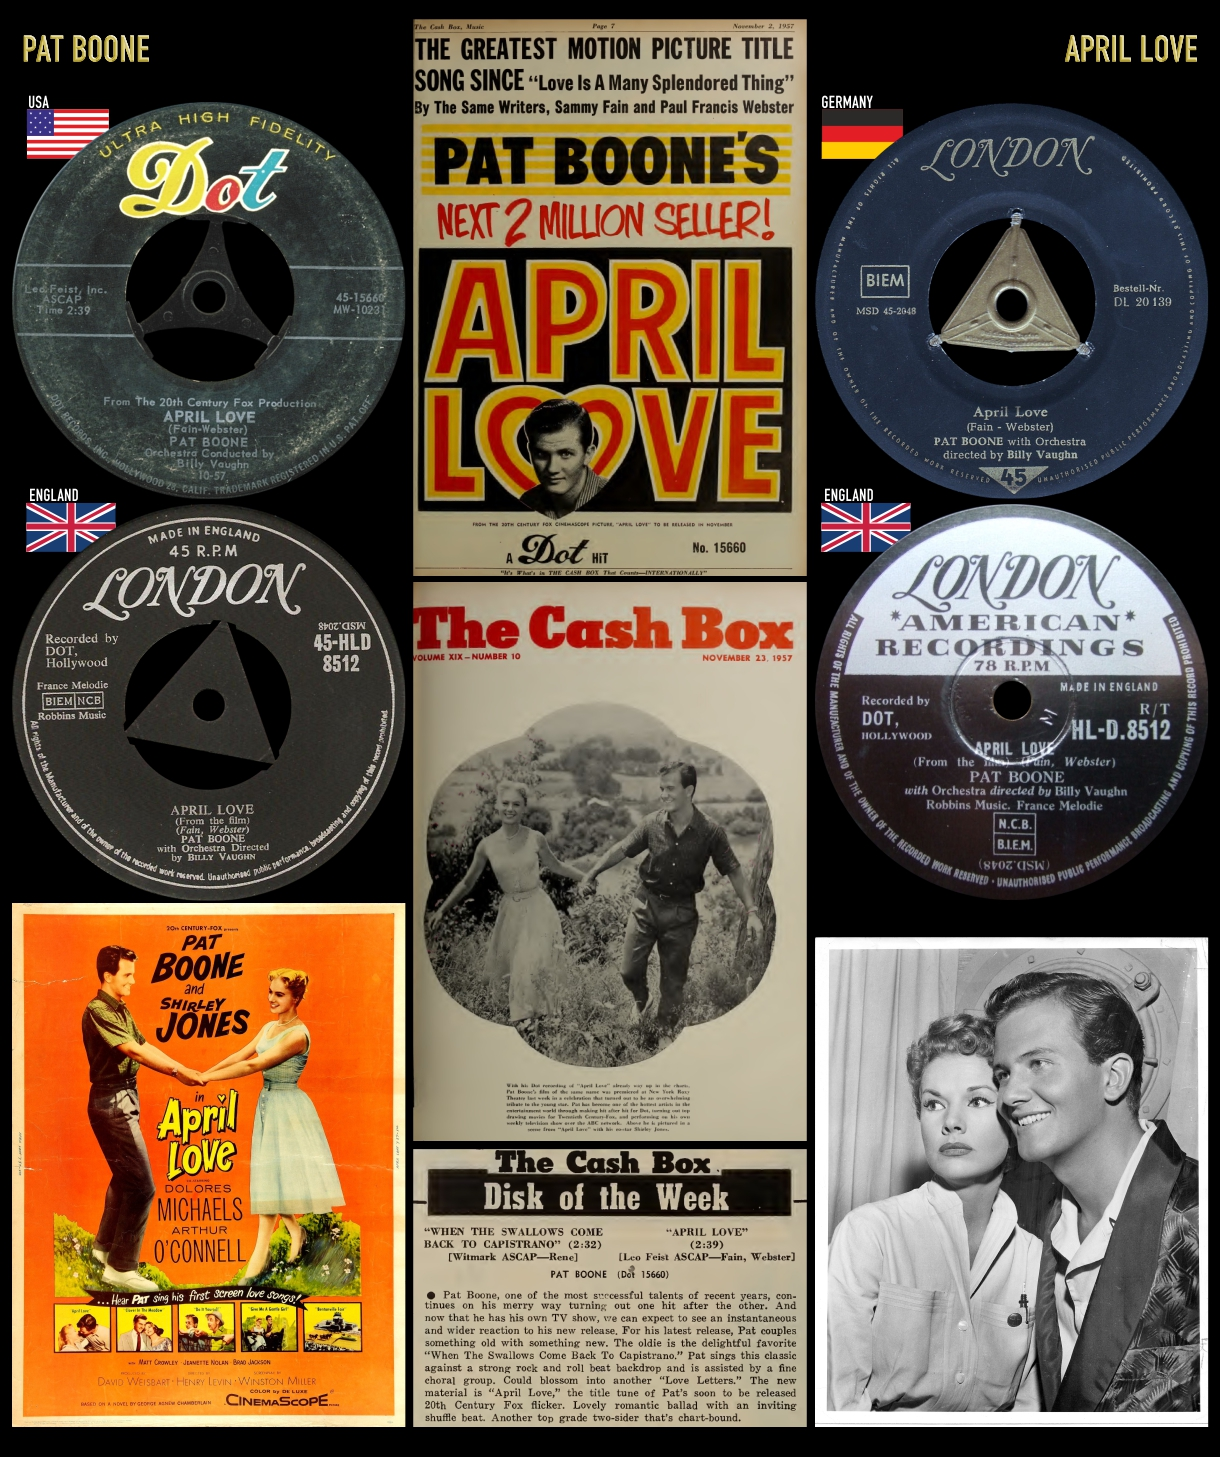 571228_Pat Boone_April Love